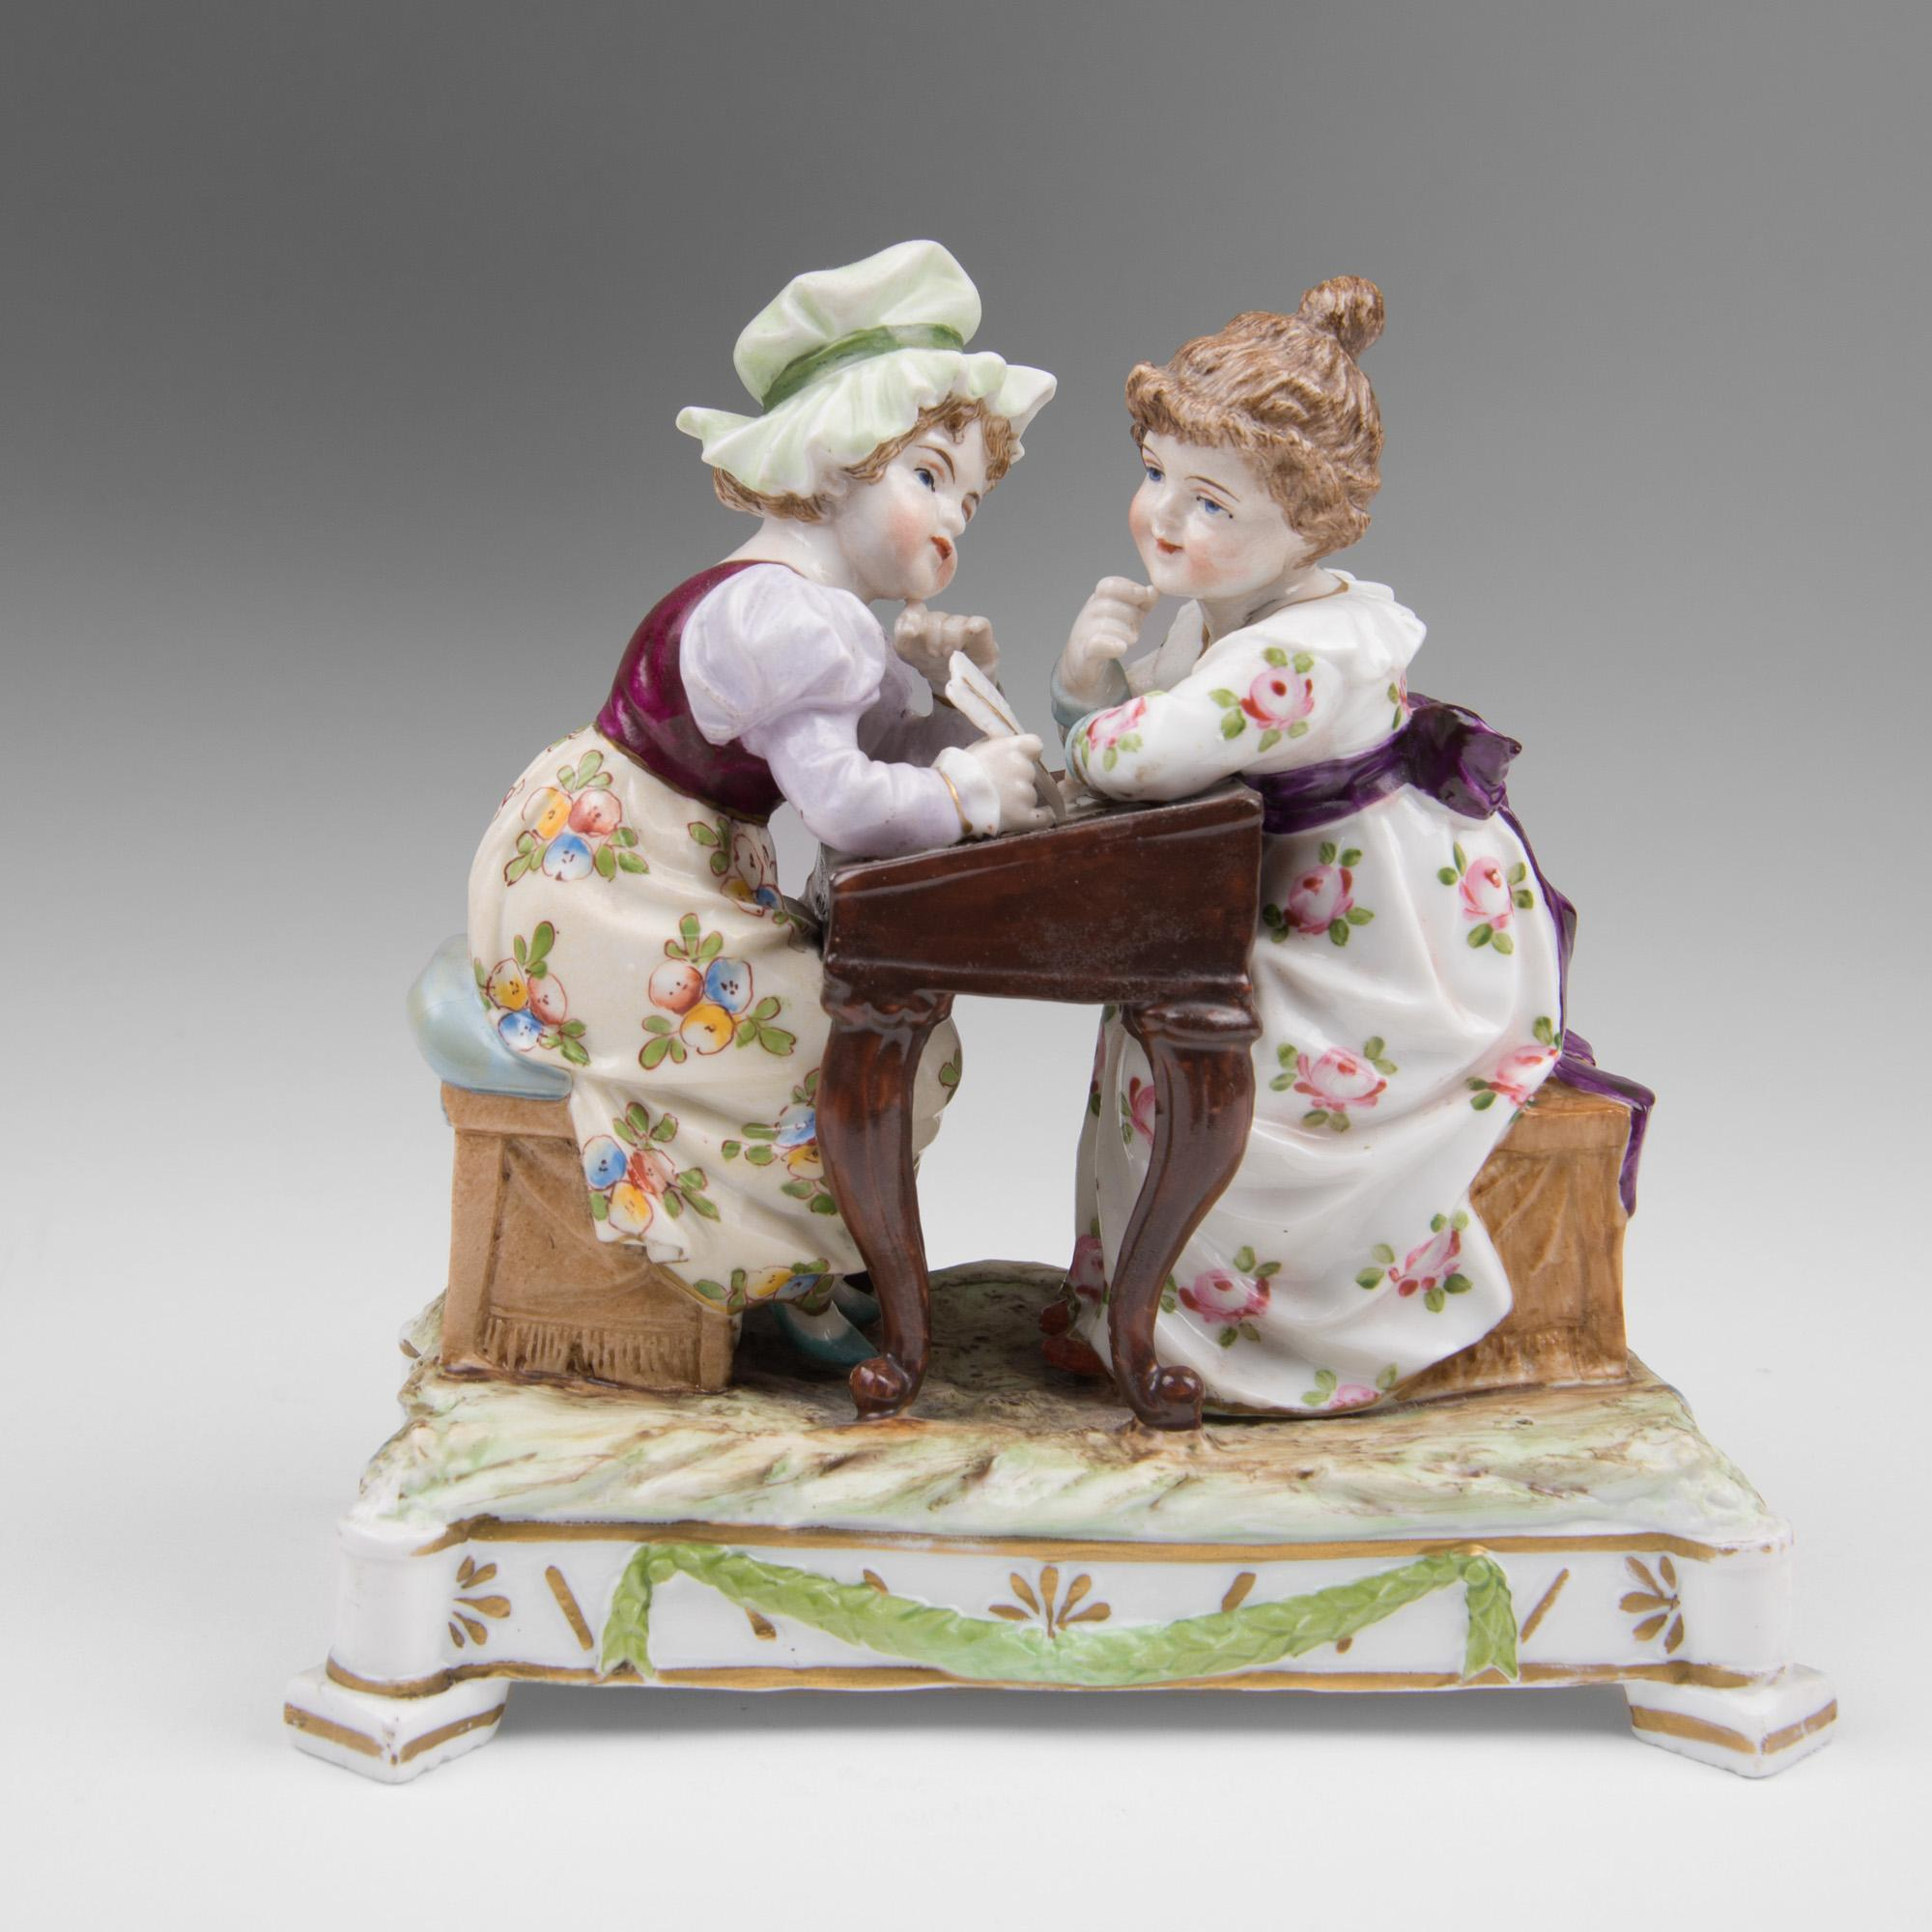 Ernst Bohne Sons Rudolstadt Porcelain Figurine Of Two Girls At Desk